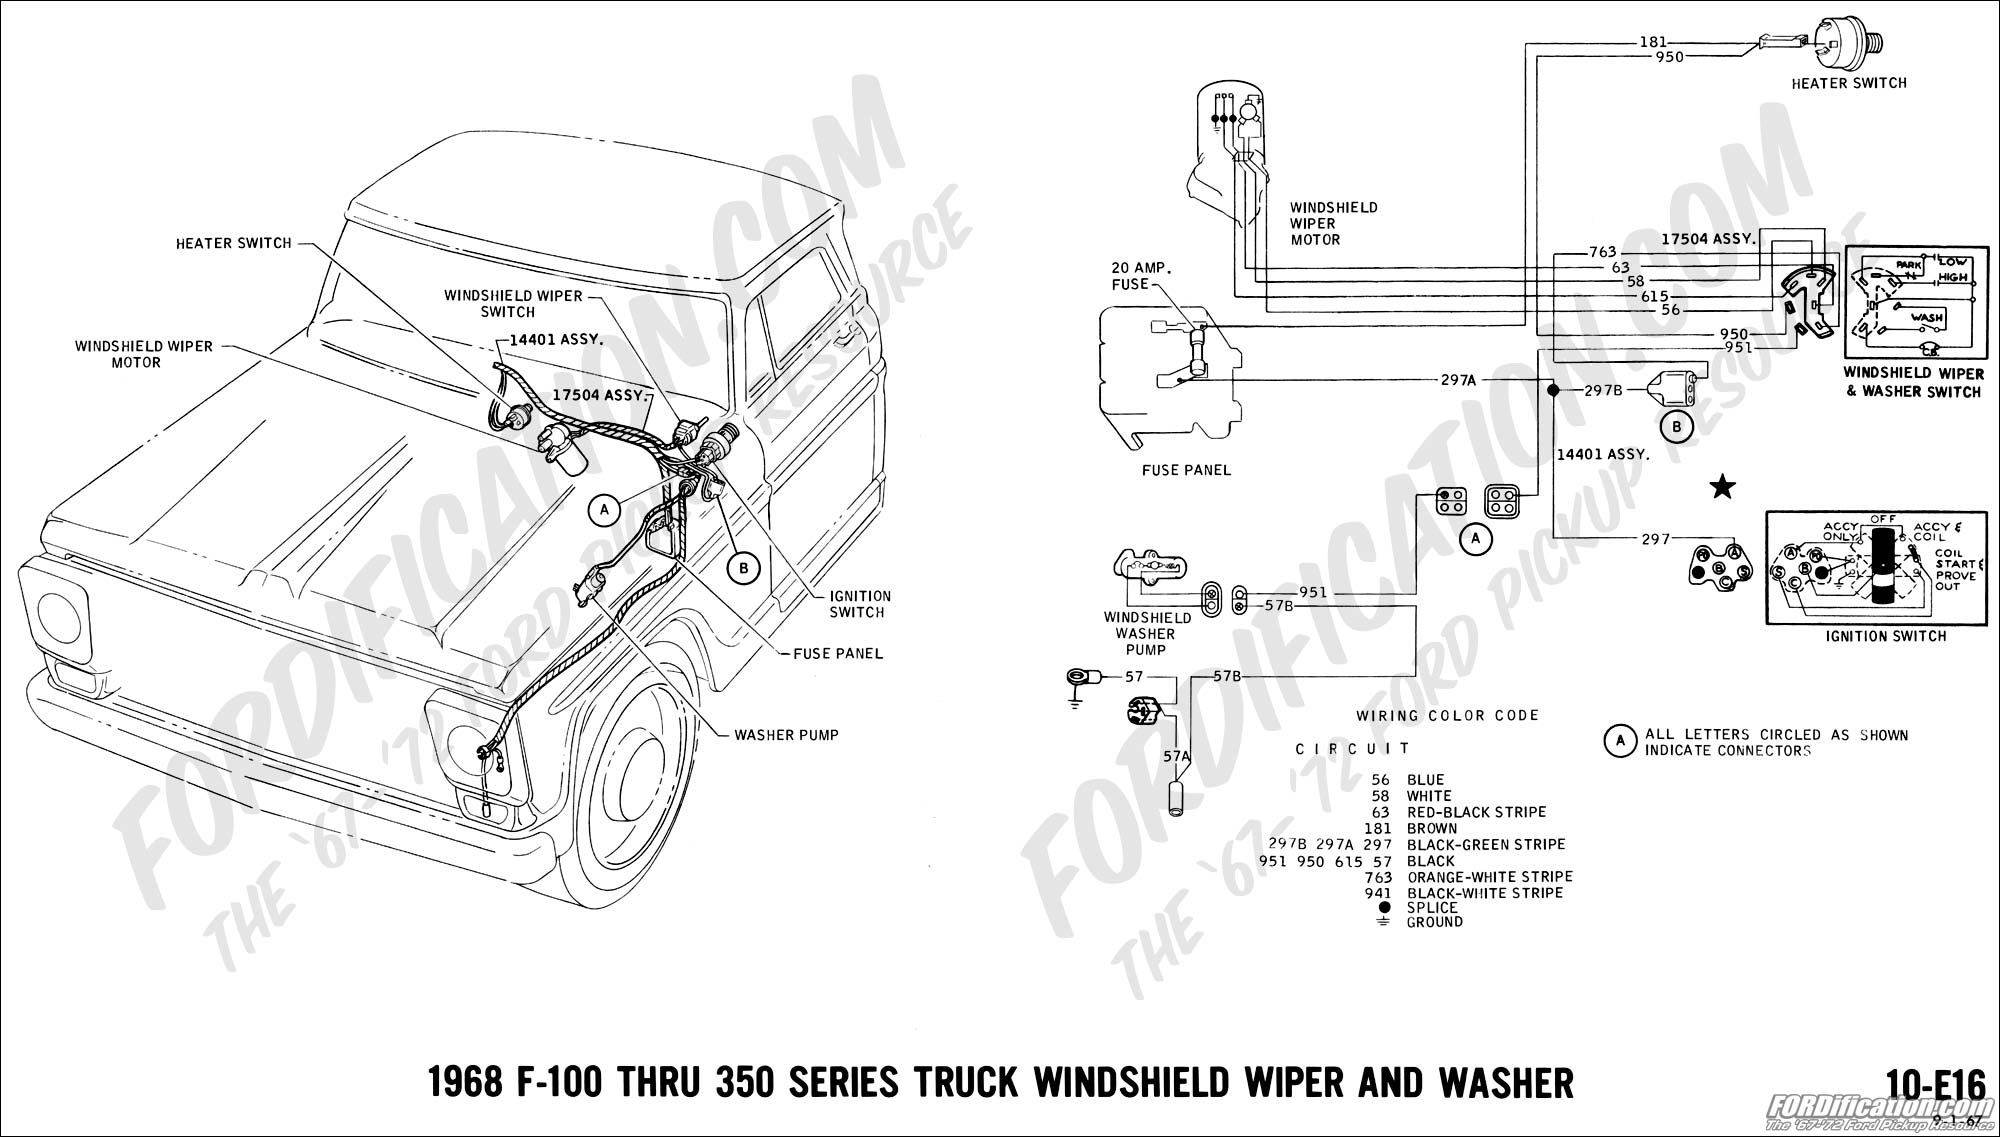 Ford Truck Technical Drawings And Schematics Section H Wiring Alternator Diagram 1982 E350 460 1968 F 100 Thru 350 Windshield Wiper Washer